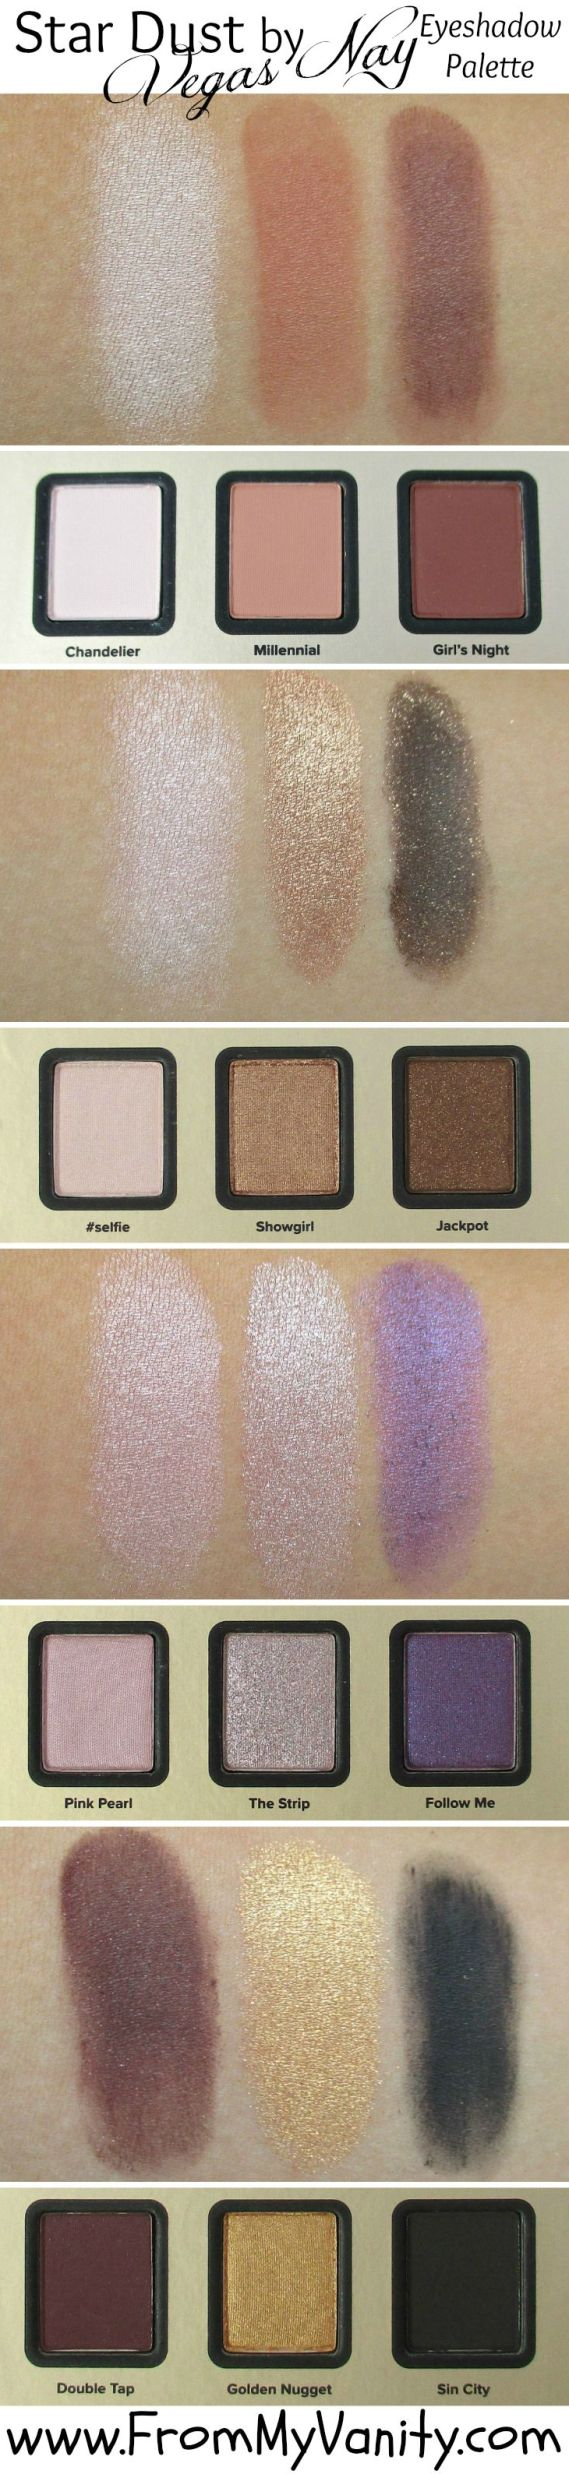 Too Faced Star Dust Vegas Nay // Palette Swatches // FromMyVanity.com